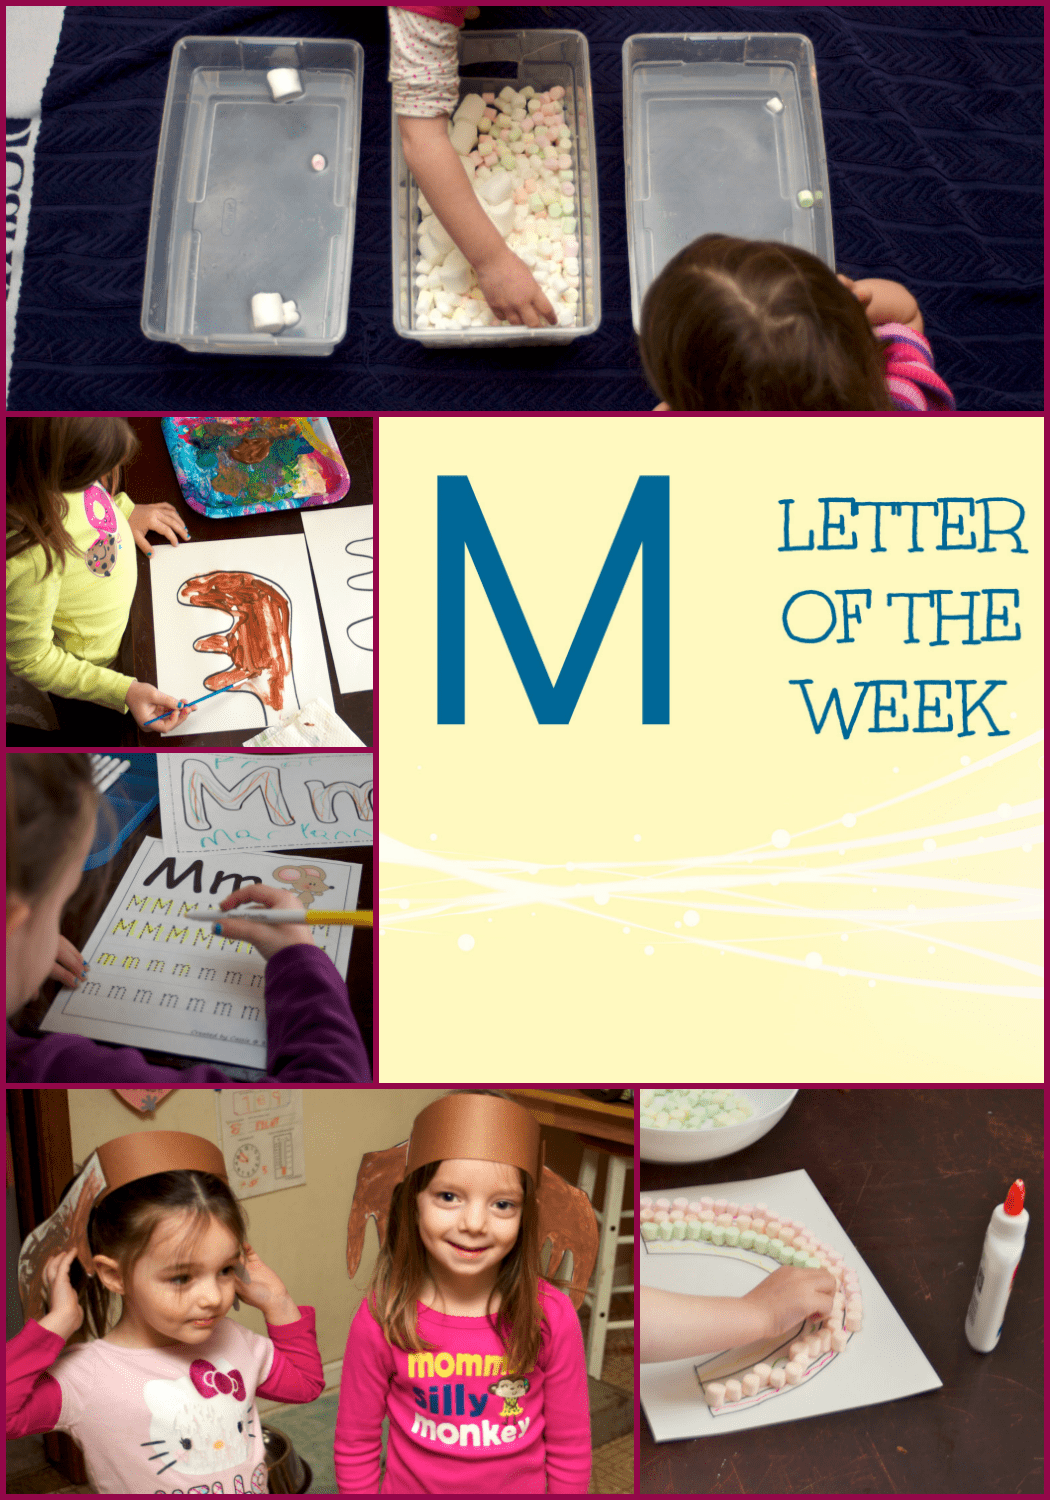 Looking for Letter M Activities for Preschool? Click here for Letter M activities. They include a craft, marshmallow art, and marshmallow sensory play!